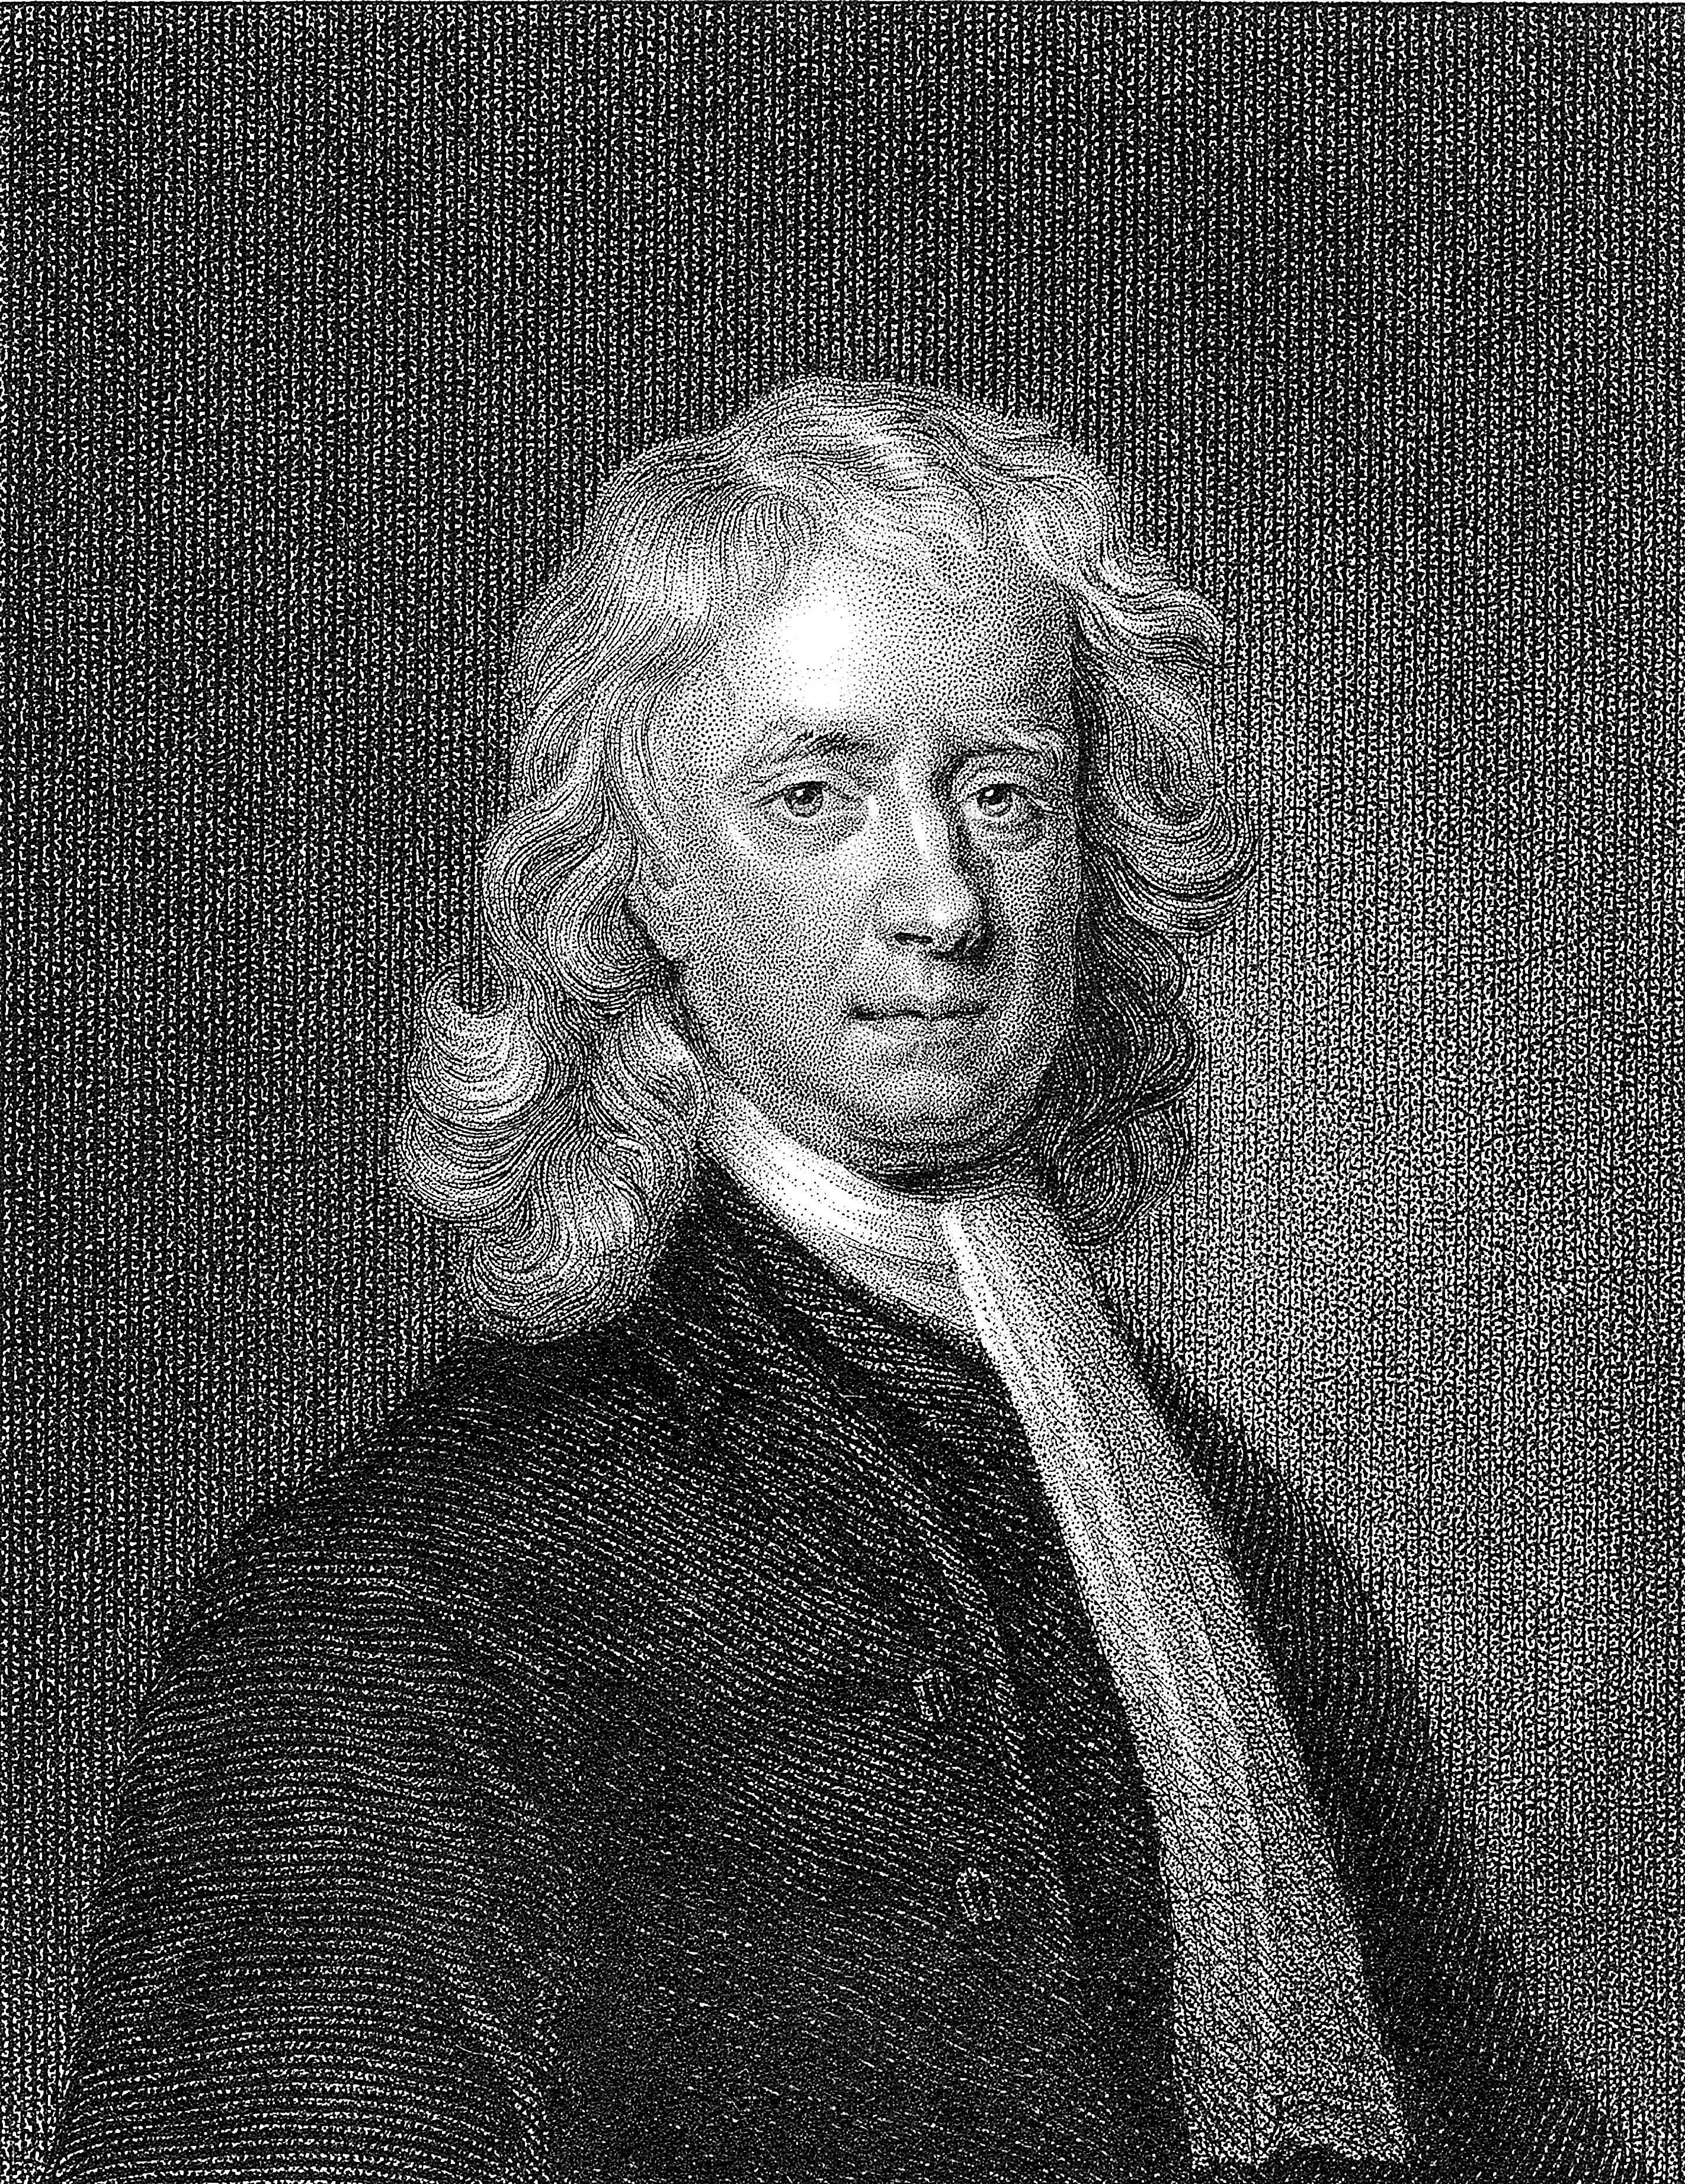 issac newtom essay Sir isaac newton was born on 25 december 1642 and is believed to be the greatest and most influential scientist who ever lived newton was an english physicist, mathematician.